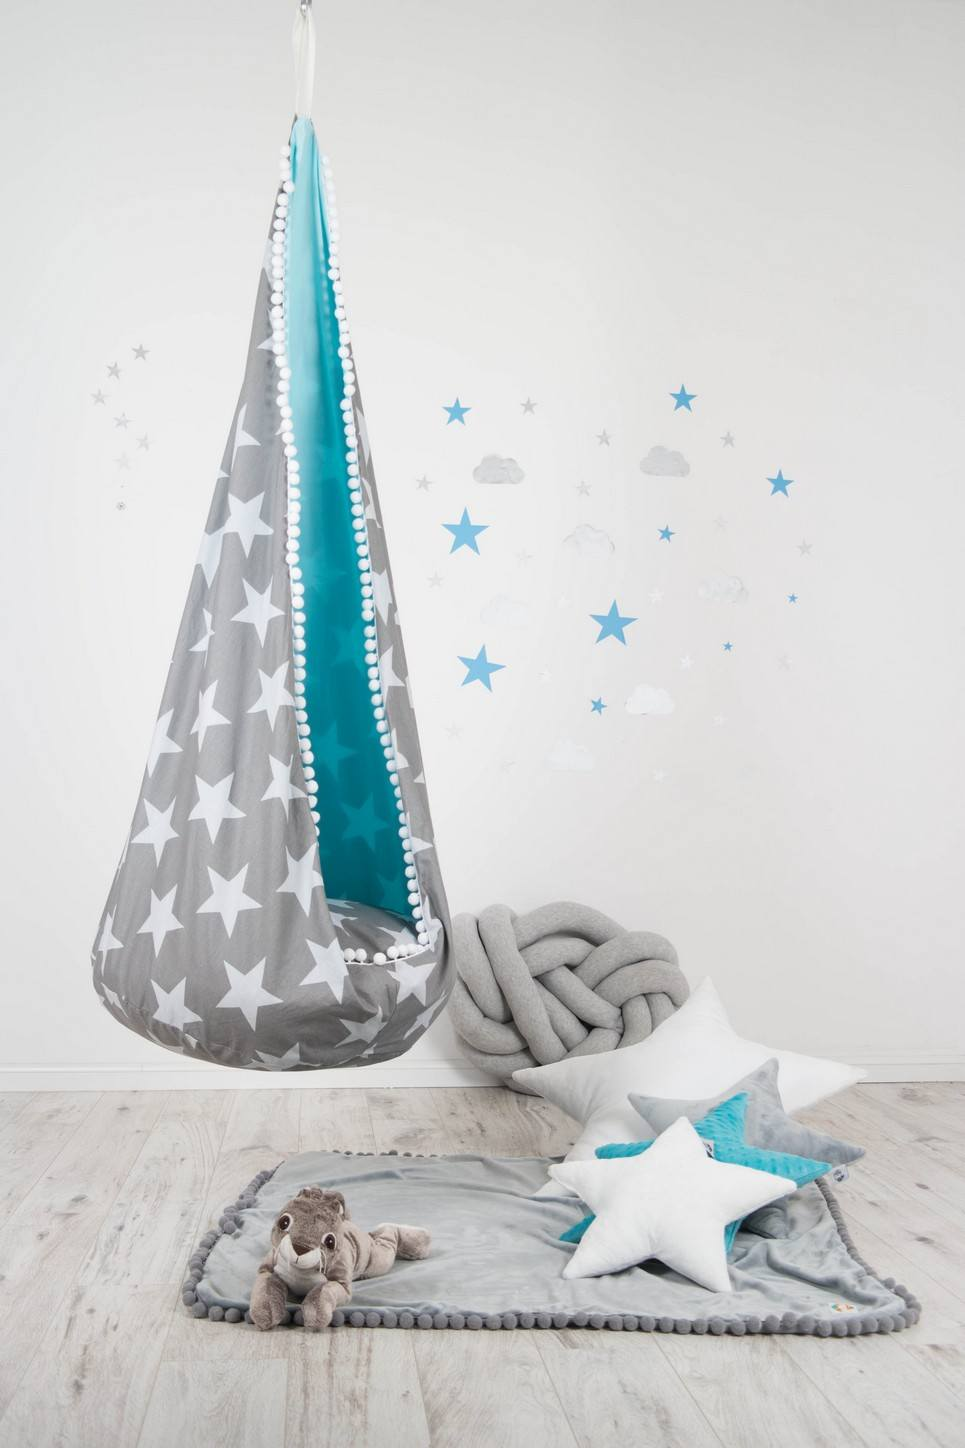 HANGING COCOON CHAIR SWING UNDERSKY STAR | Cocoon Patio ...